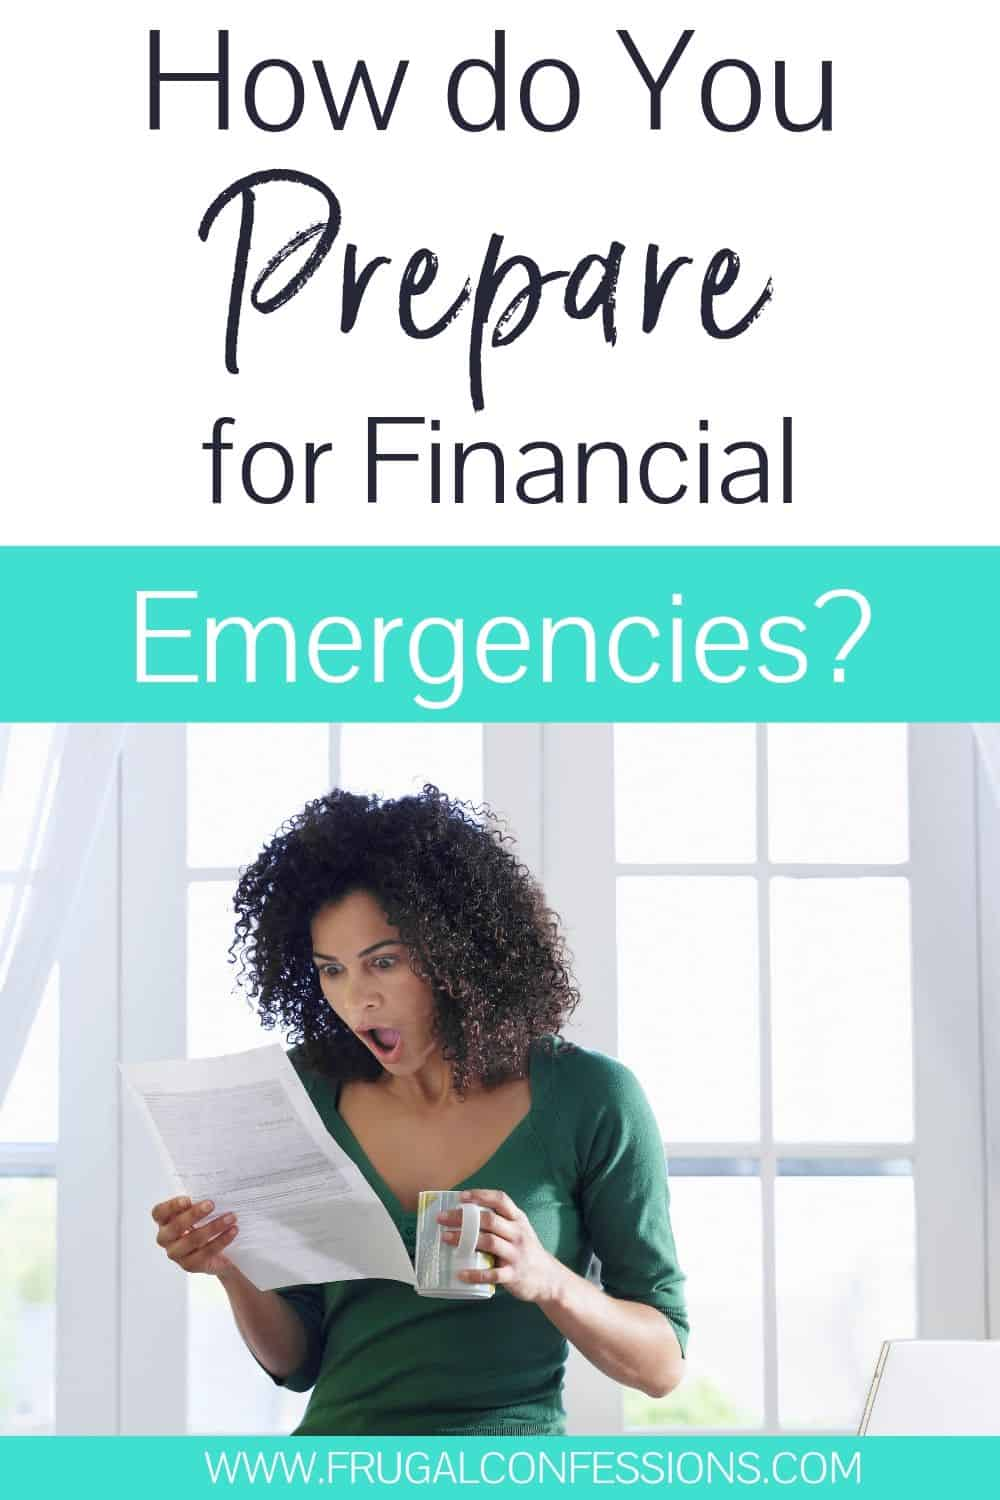 """woman looking shocked as she sees bill in hand, text overlay """"how do you prepare for financial emergencies?"""""""